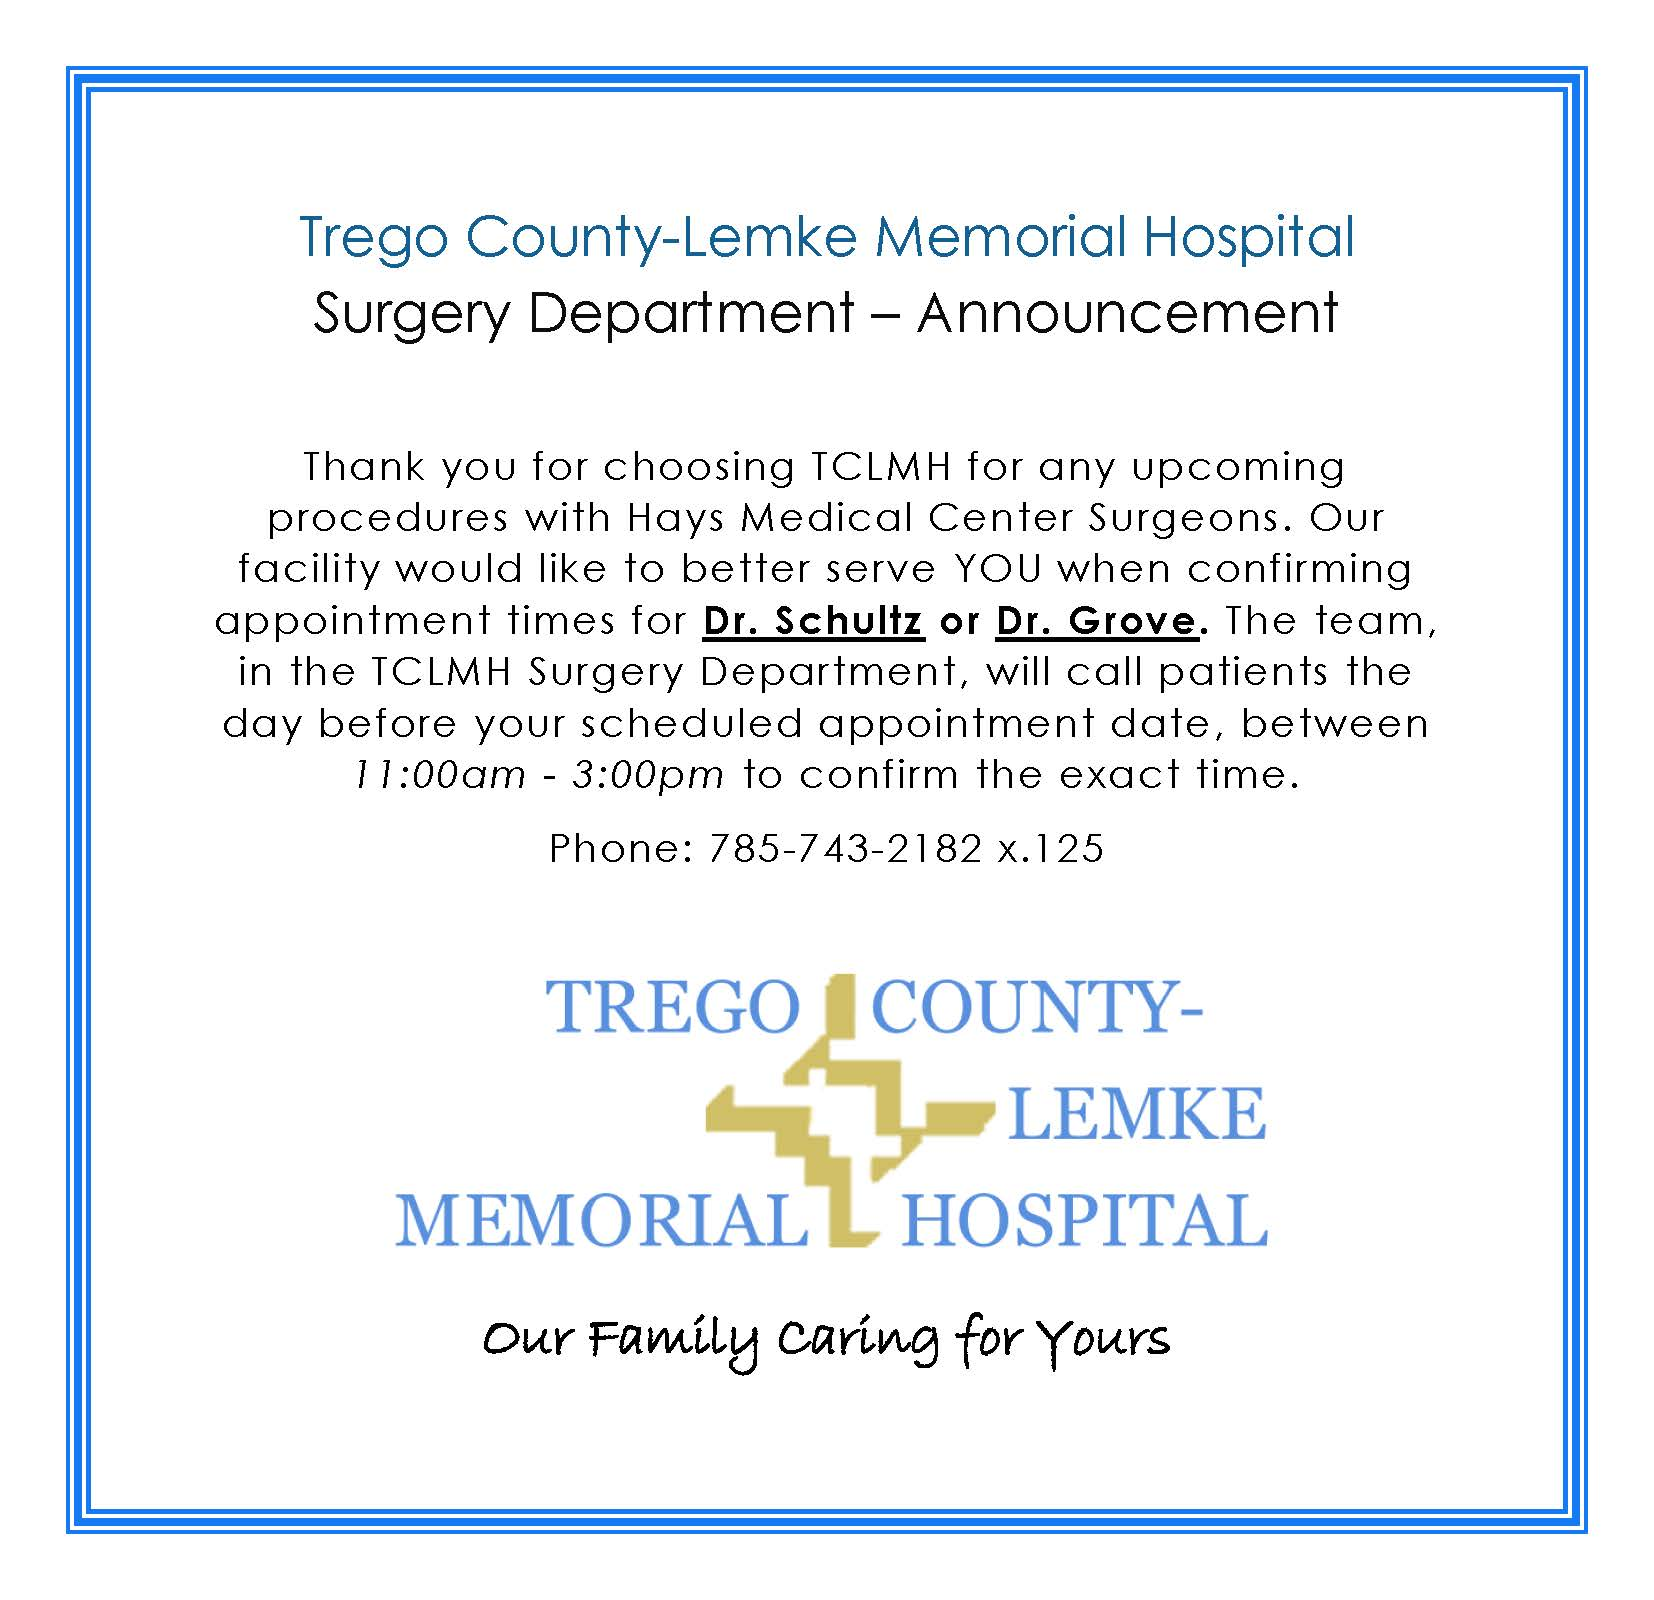 Surgery Announcement